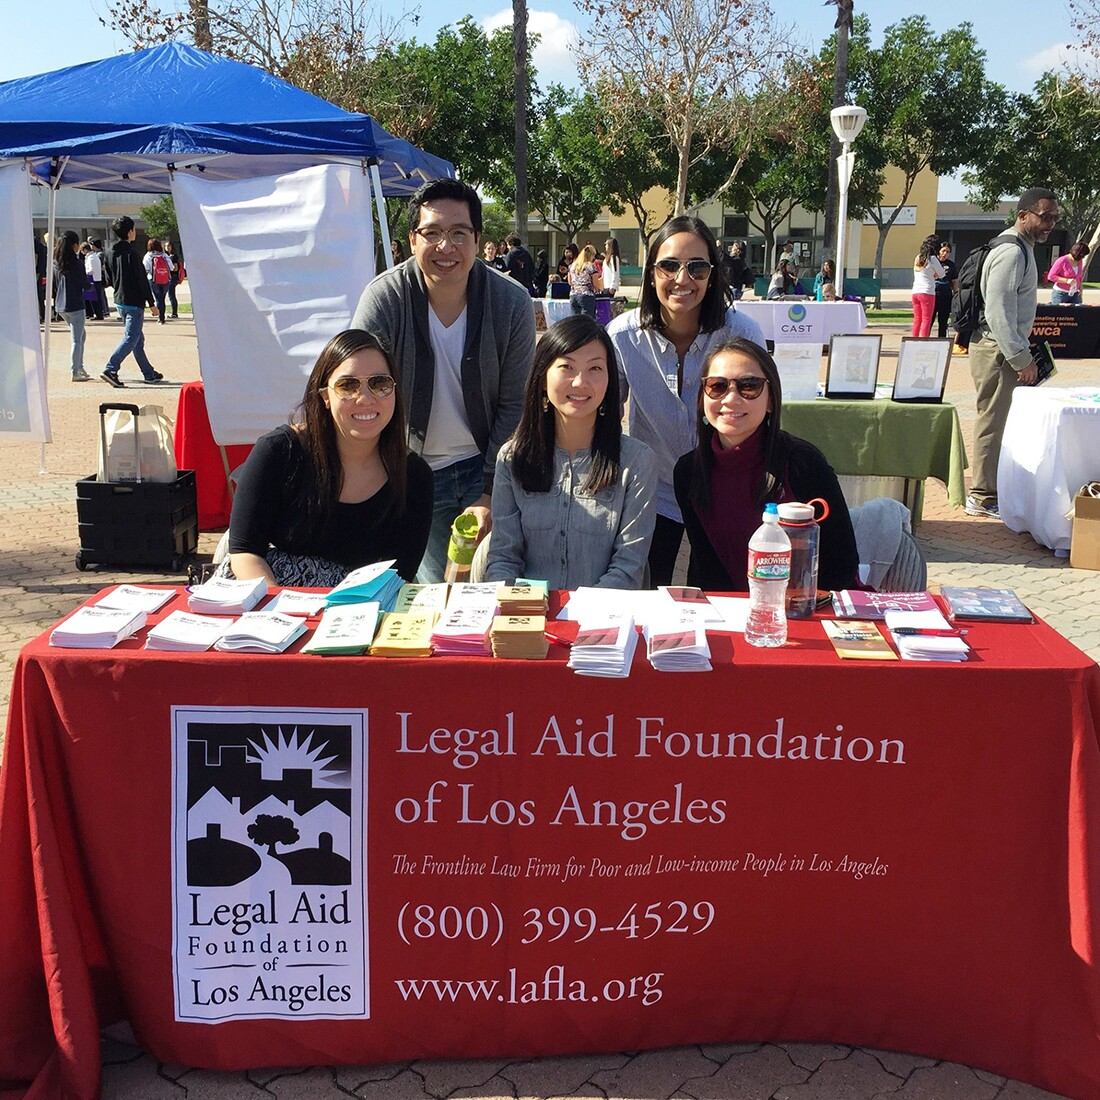 LAFLA tabling at the Youth Exploitation Safety Symposium (Y.E.S.S.) hosted by the Long Beach Trafficking Task Force and Long Beach Unified School District at Cabrillo High School in 2015. | Legal Aid Foundation of Los Angeles